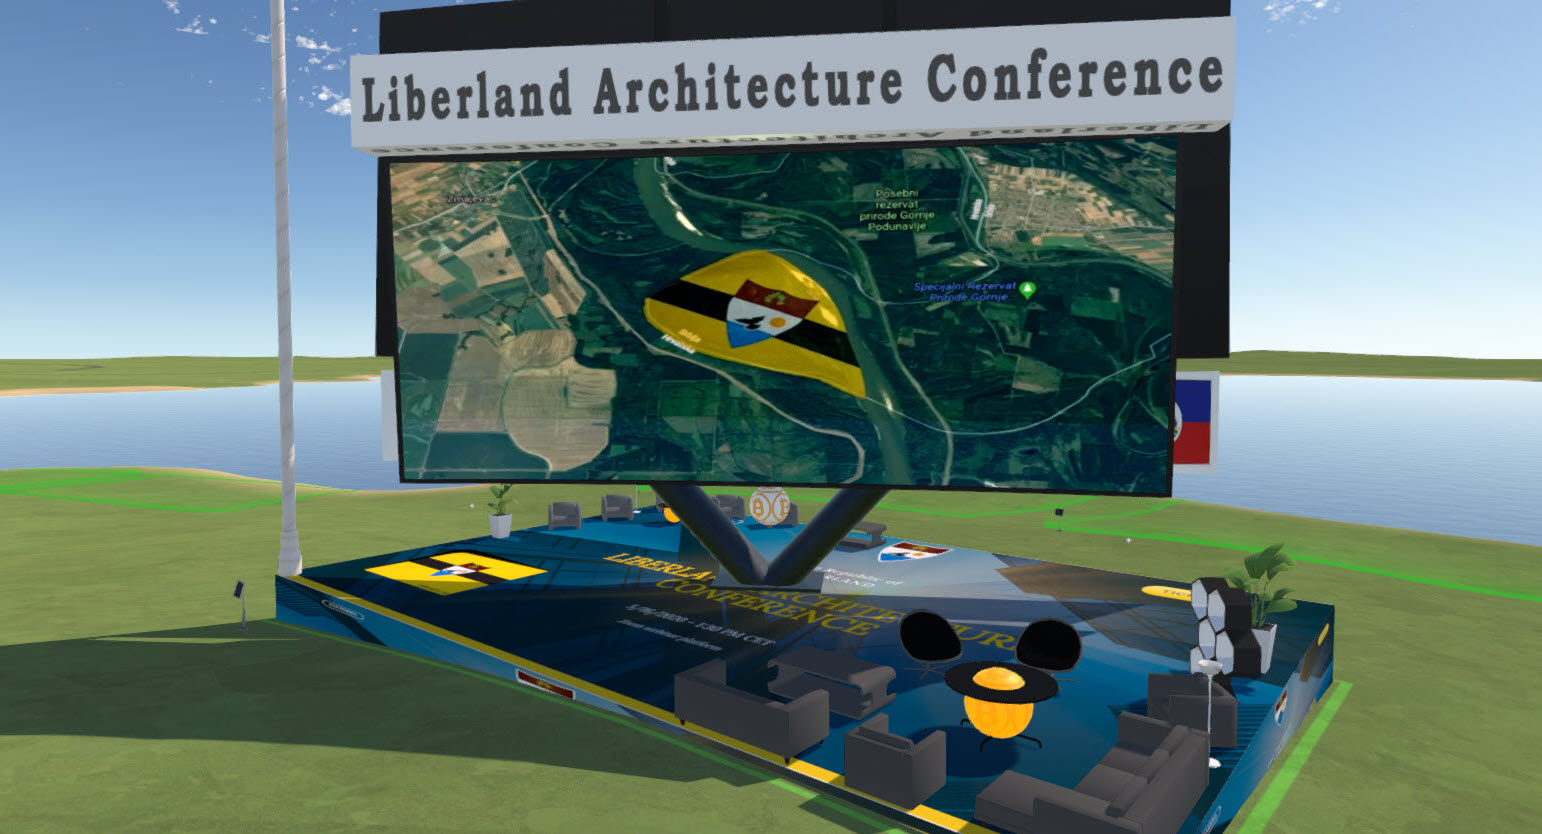 Liberland Architecture Conference - Free Republic of Liberland TV - 4